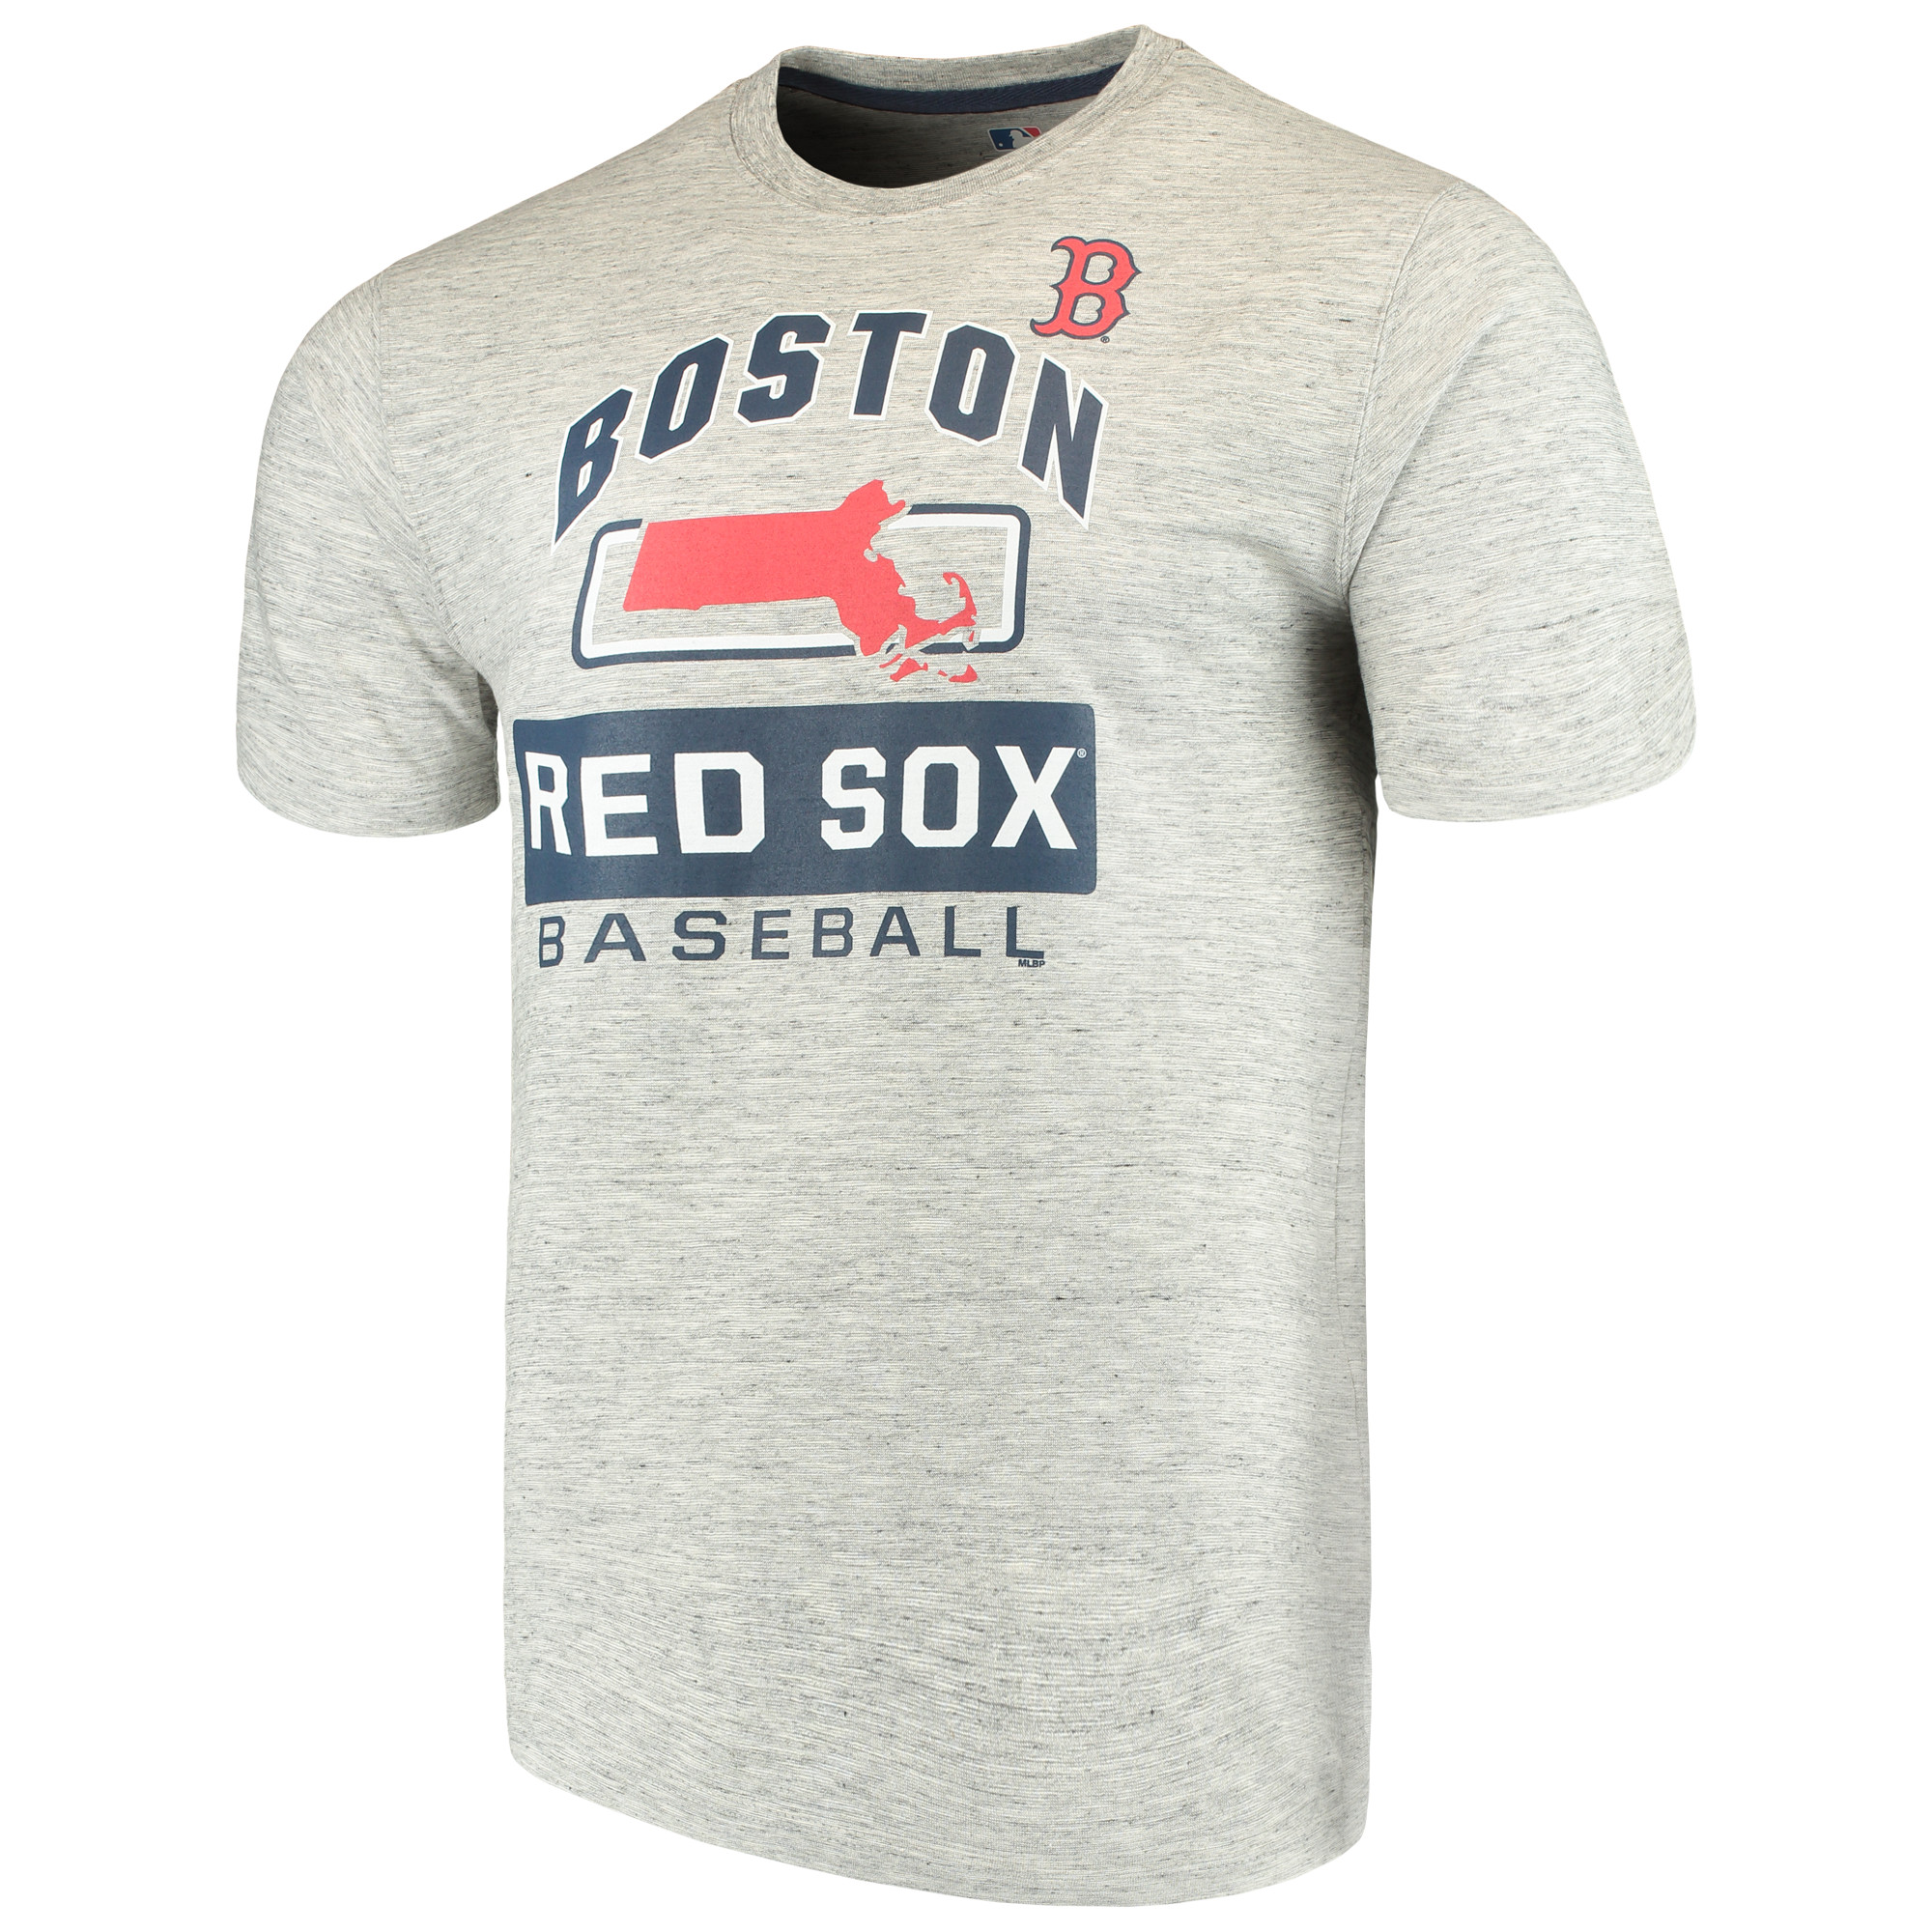 Men's Majestic Heathered Gray Boston Red Sox Endurance Factor T-Shirt